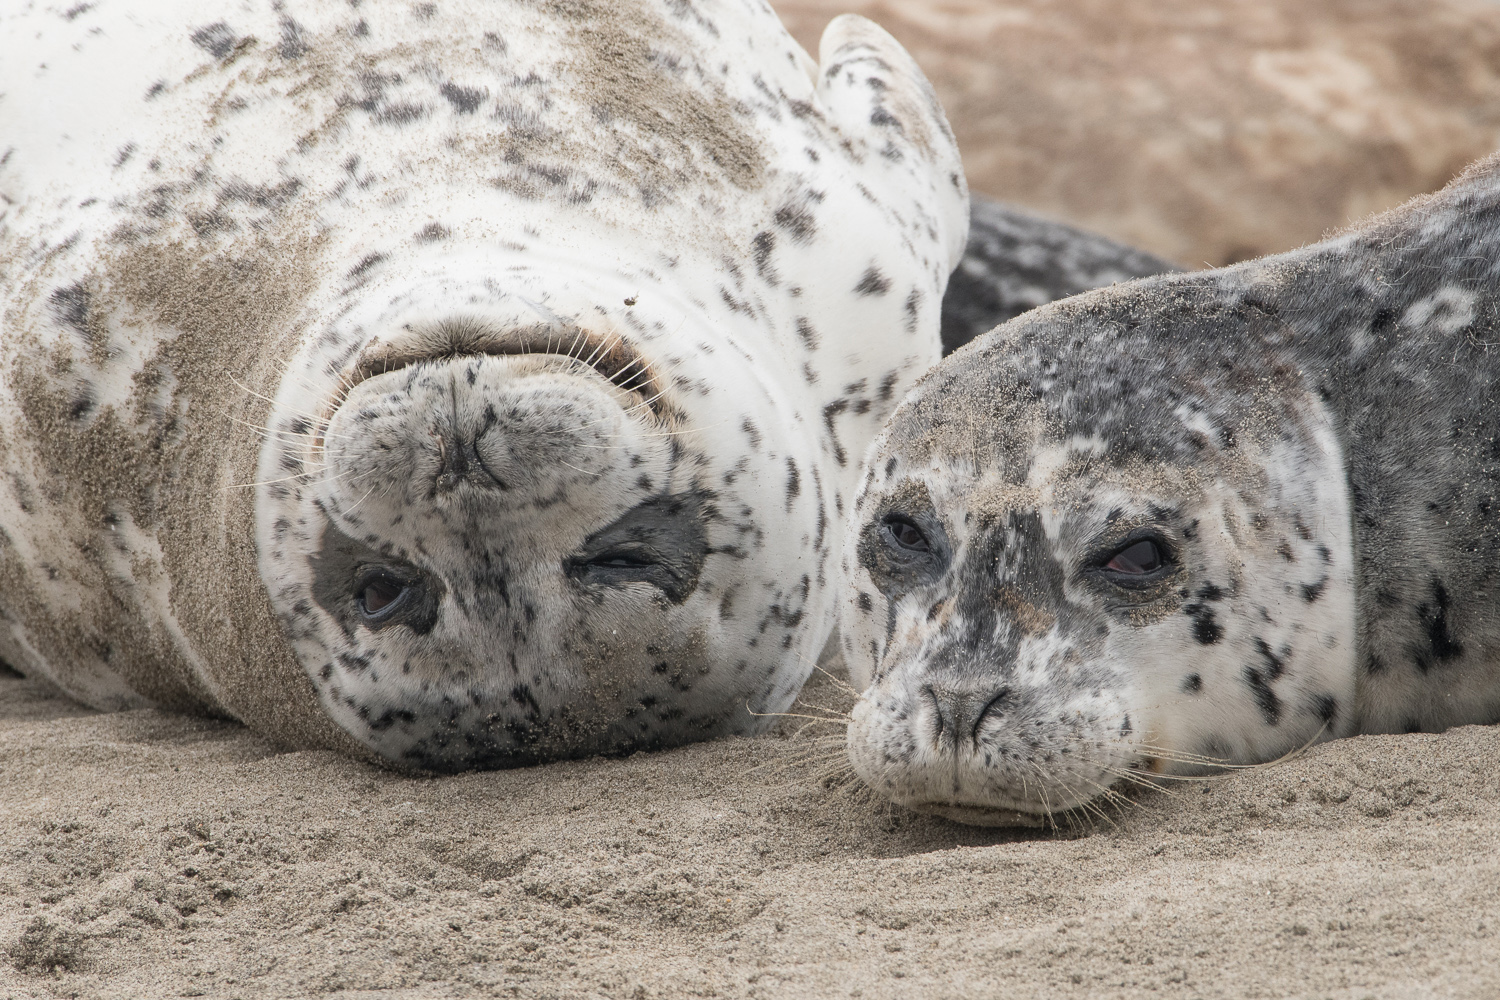 Happy - Sad (Harbor Seals) - Elkhorn Slough  Nikon D500 + Nikon 200-500mm f/5.6VR